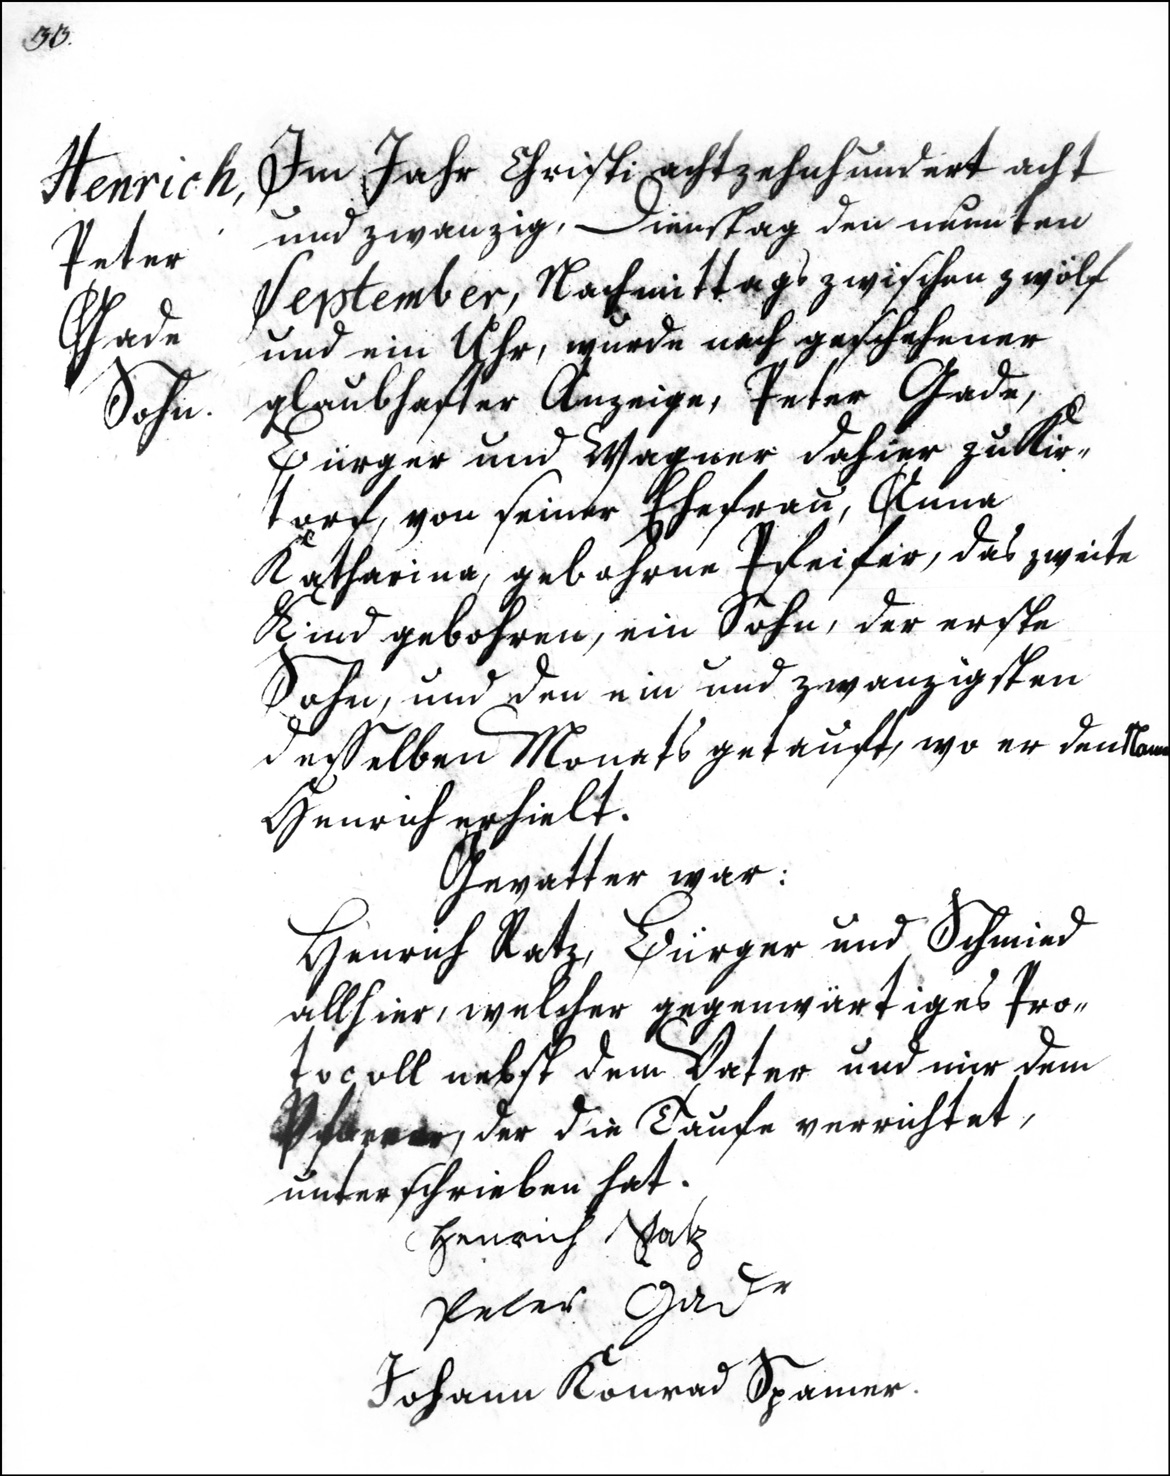 The Birth and Baptismal Record of Henrich Gade - 1828